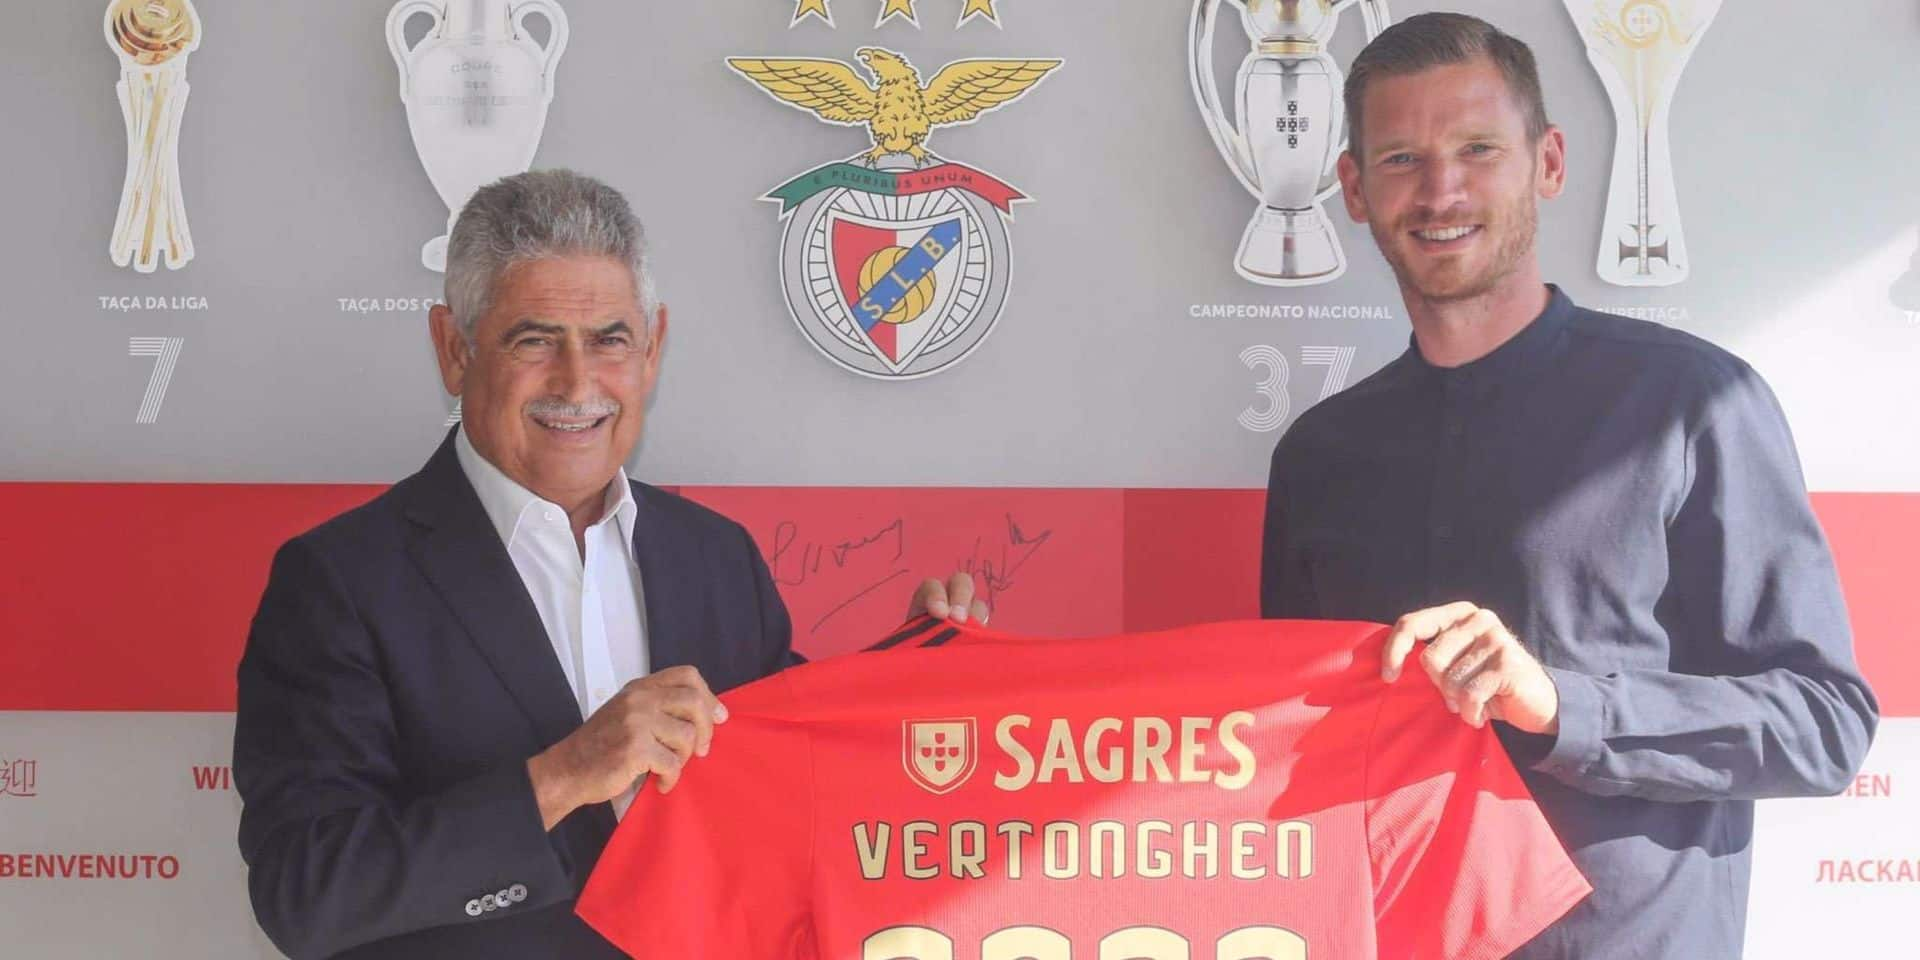 Officiel: Vertonghen s'engage à Benfica